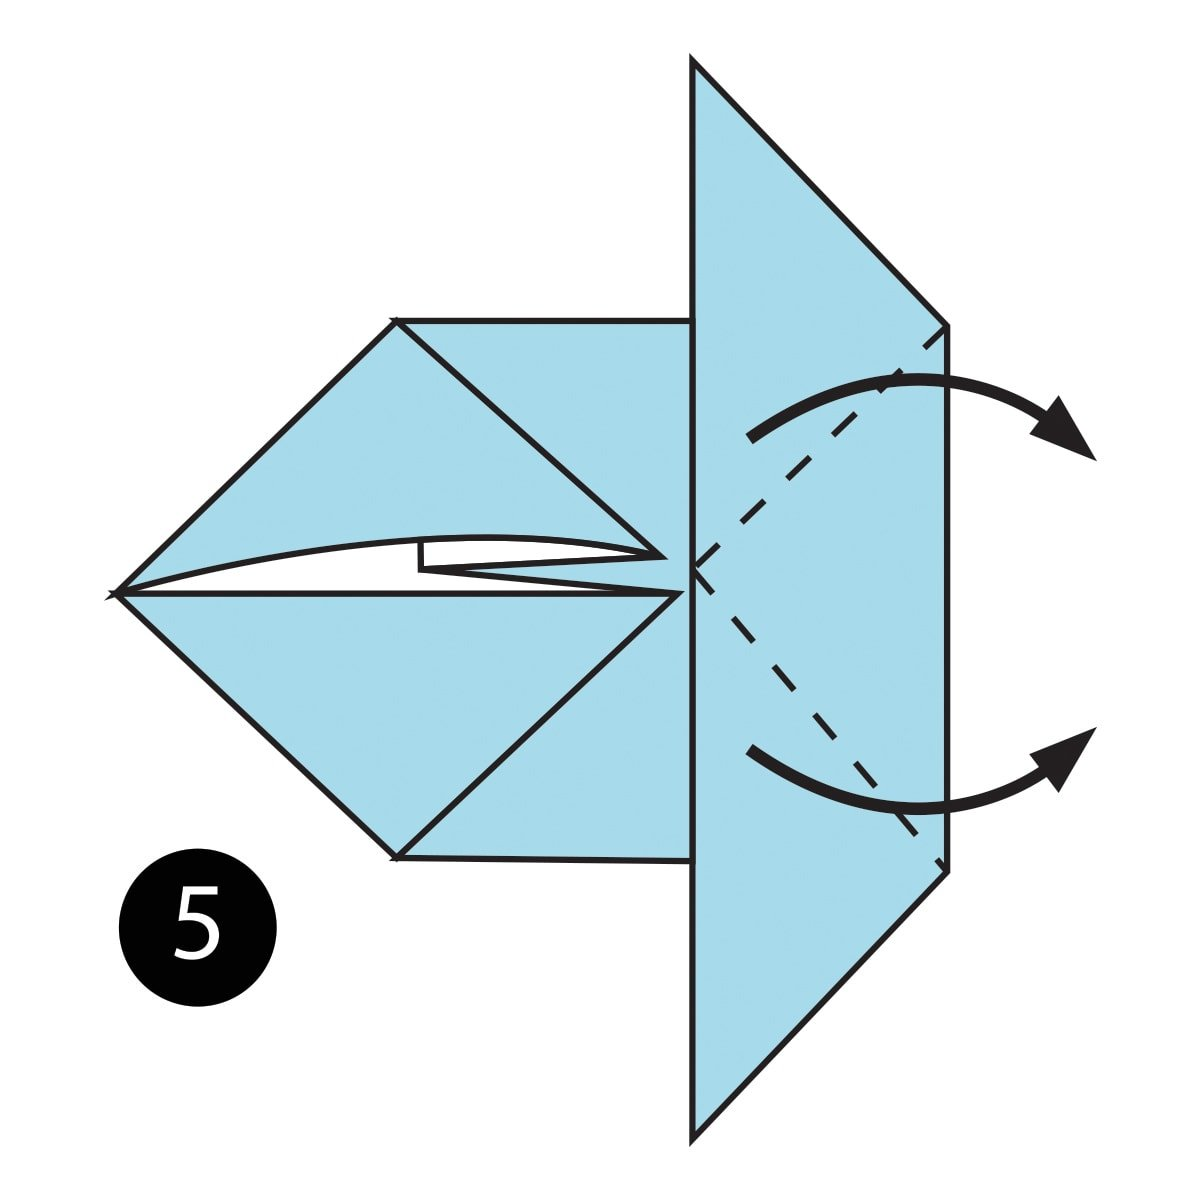 How To Fold A Simple Origami Mouse Origamiorigami Diagramorigami Instructionsorigami Step 5